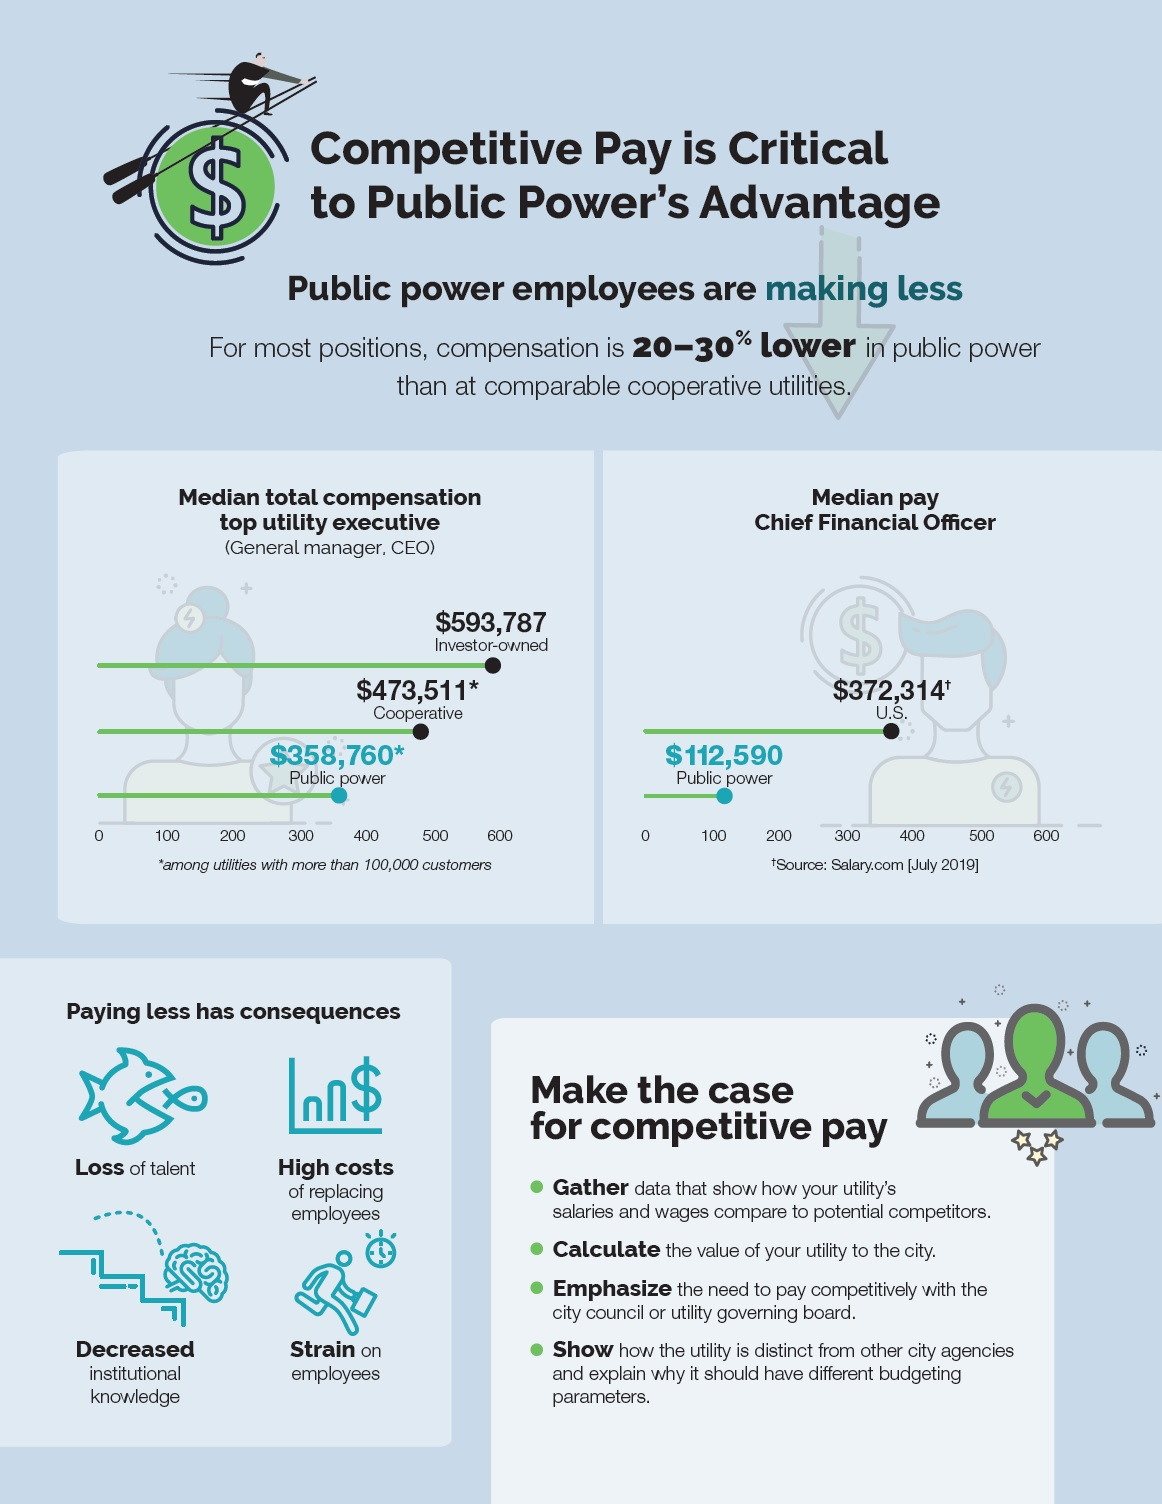 A snapshot of statistics showing disparities in pay at public power utilities